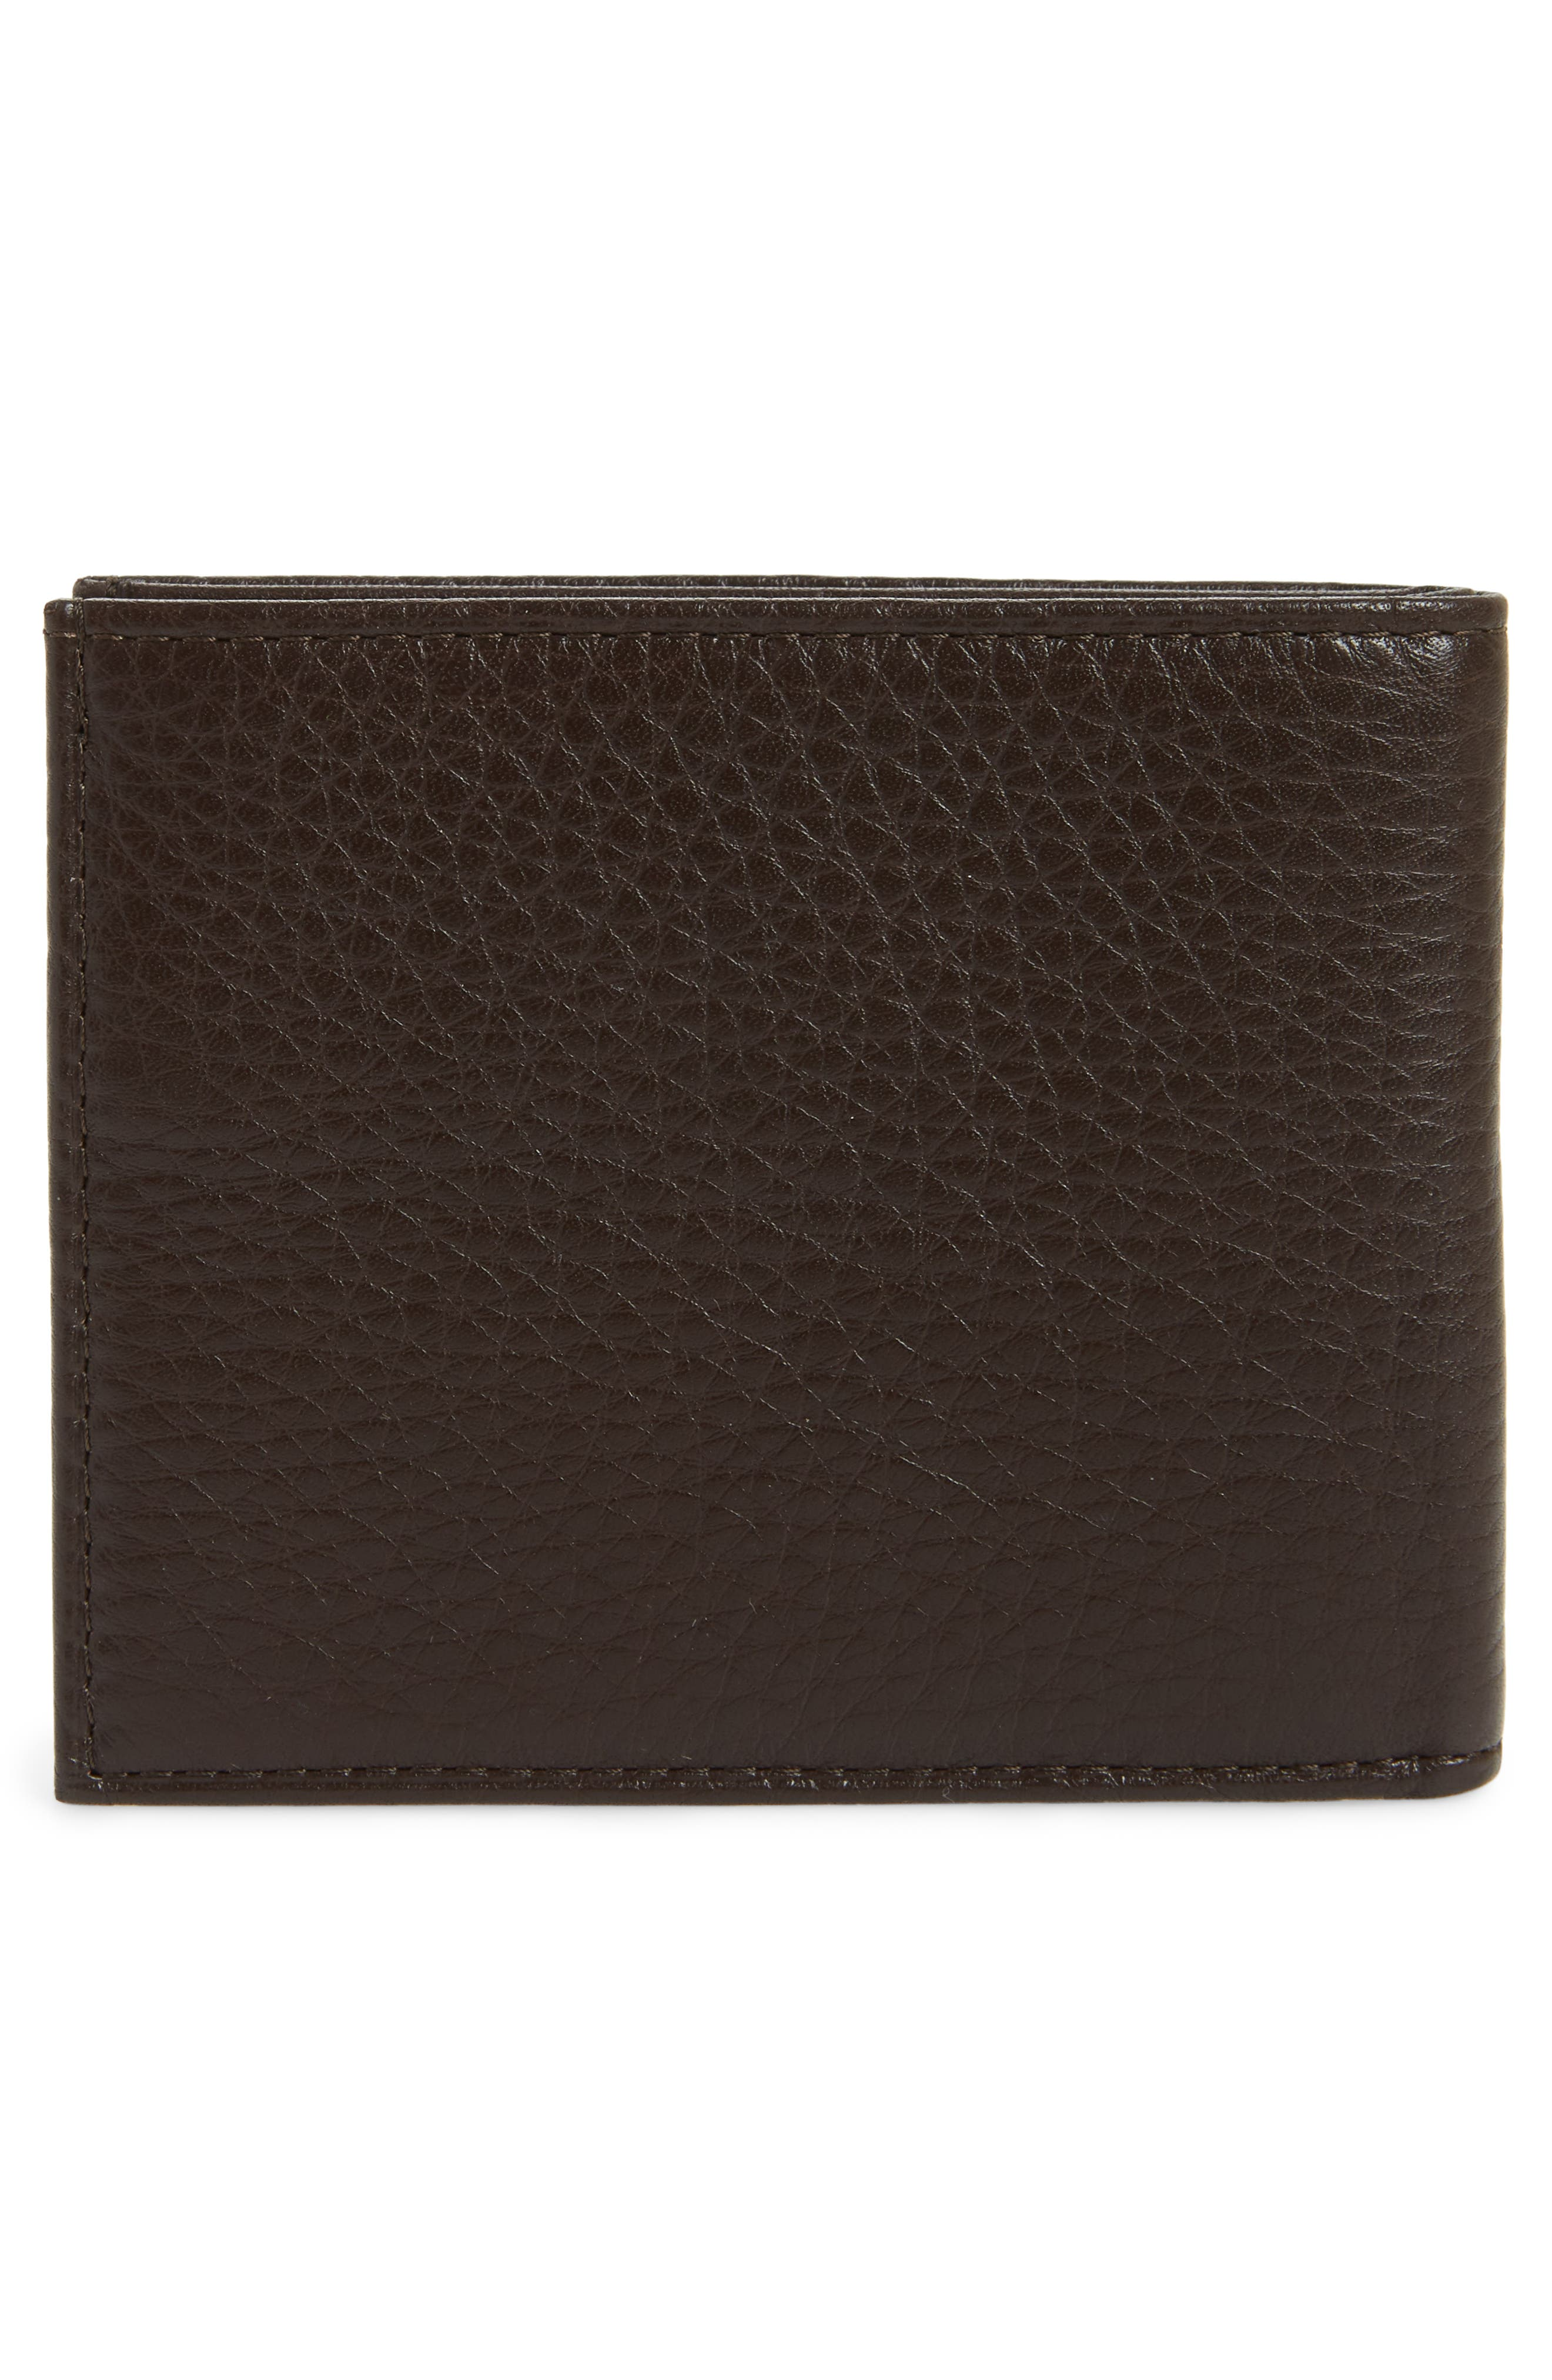 Bifold Leather Wallet,                             Alternate thumbnail 3, color,                             BROWN